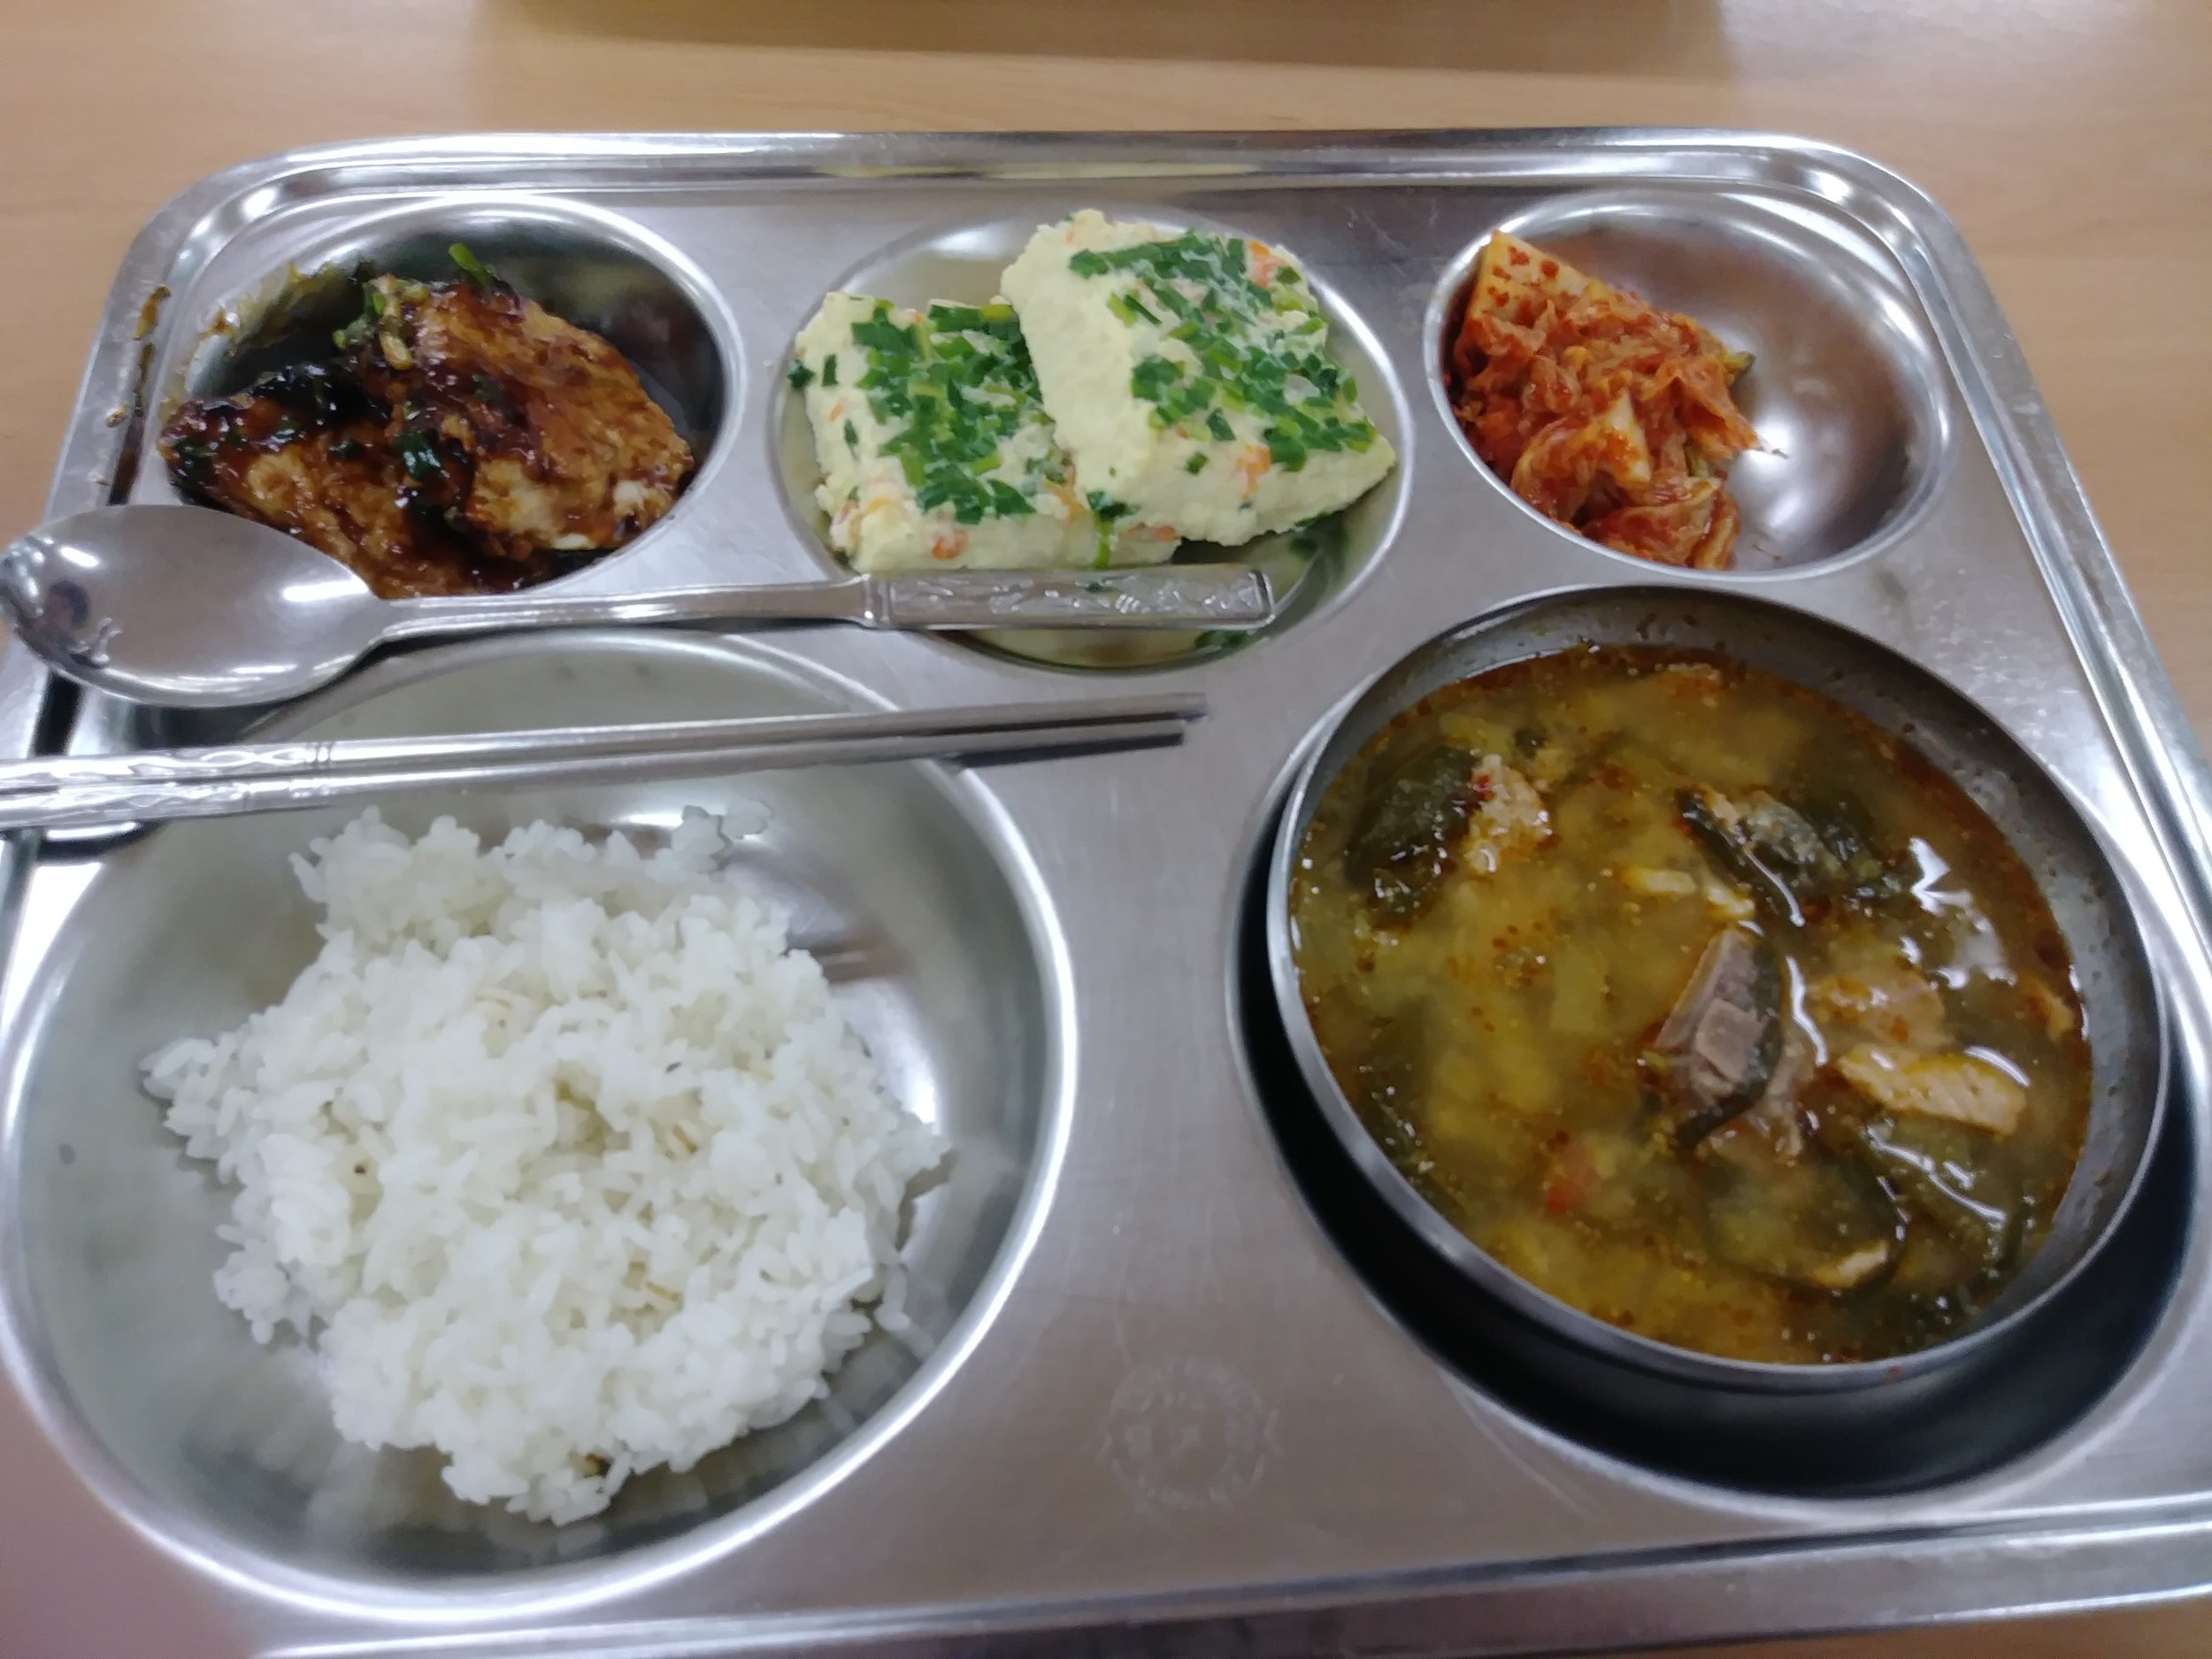 Food_SchoolFoodKorea_body01.jpg.jpg